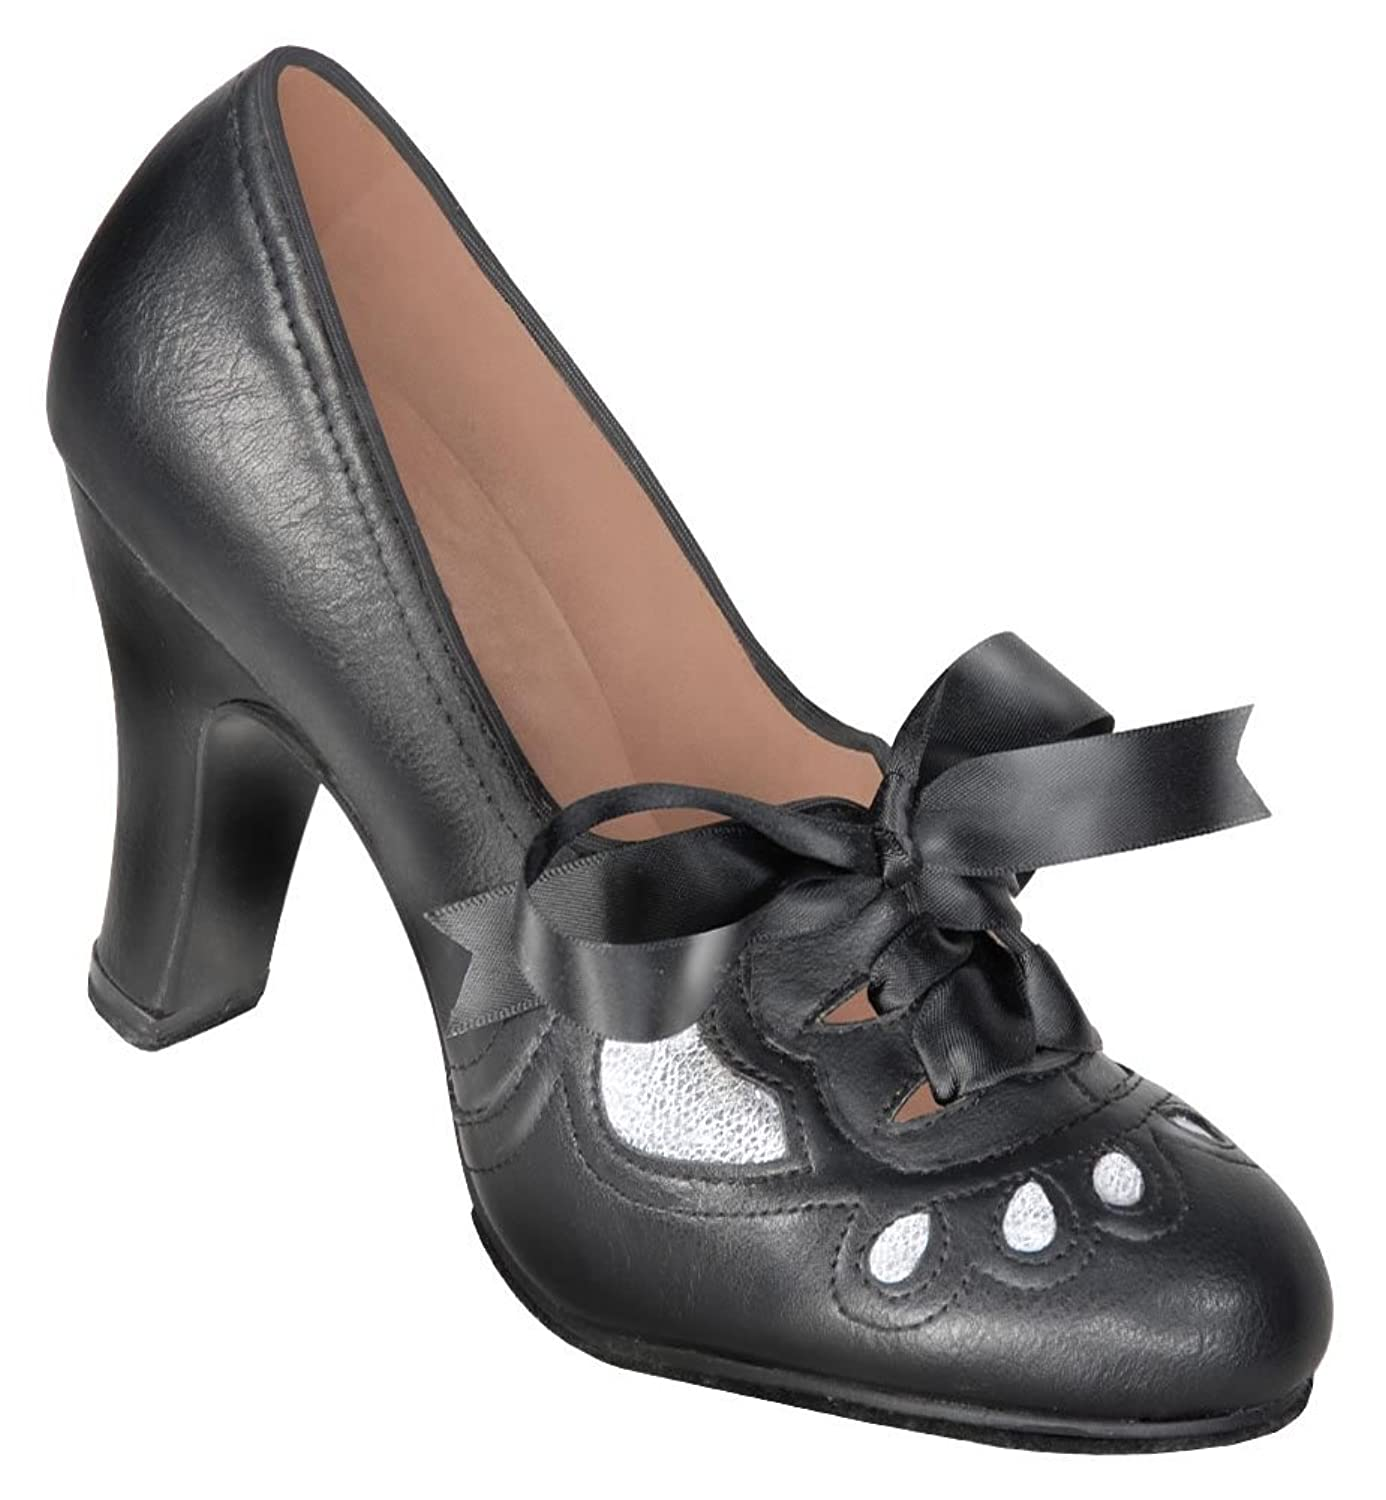 Vintage Style Shoes, Vintage Inspired Shoes Aris Allen Womens 1930s Black and Silver Lace-up Heeled Oxford Shoes $48.95 AT vintagedancer.com